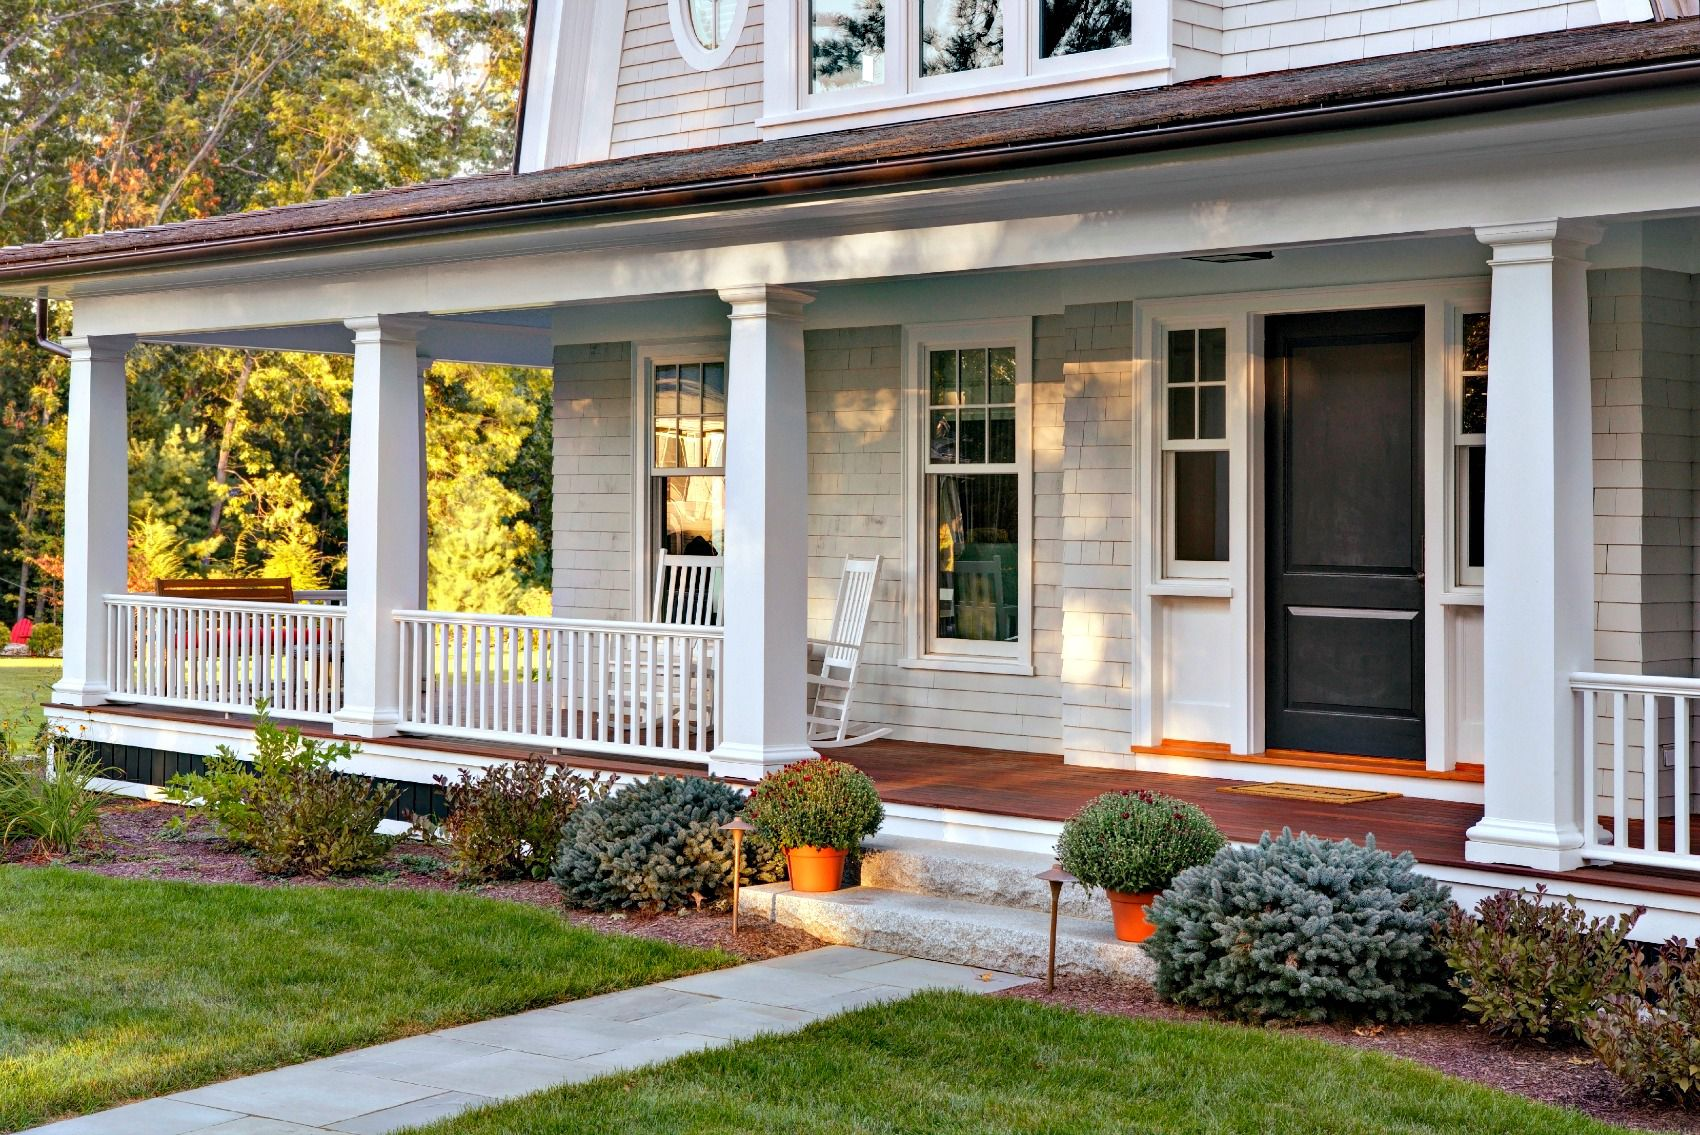 What 39 s the difference between a patio and a porch - Deck ideas for home ...